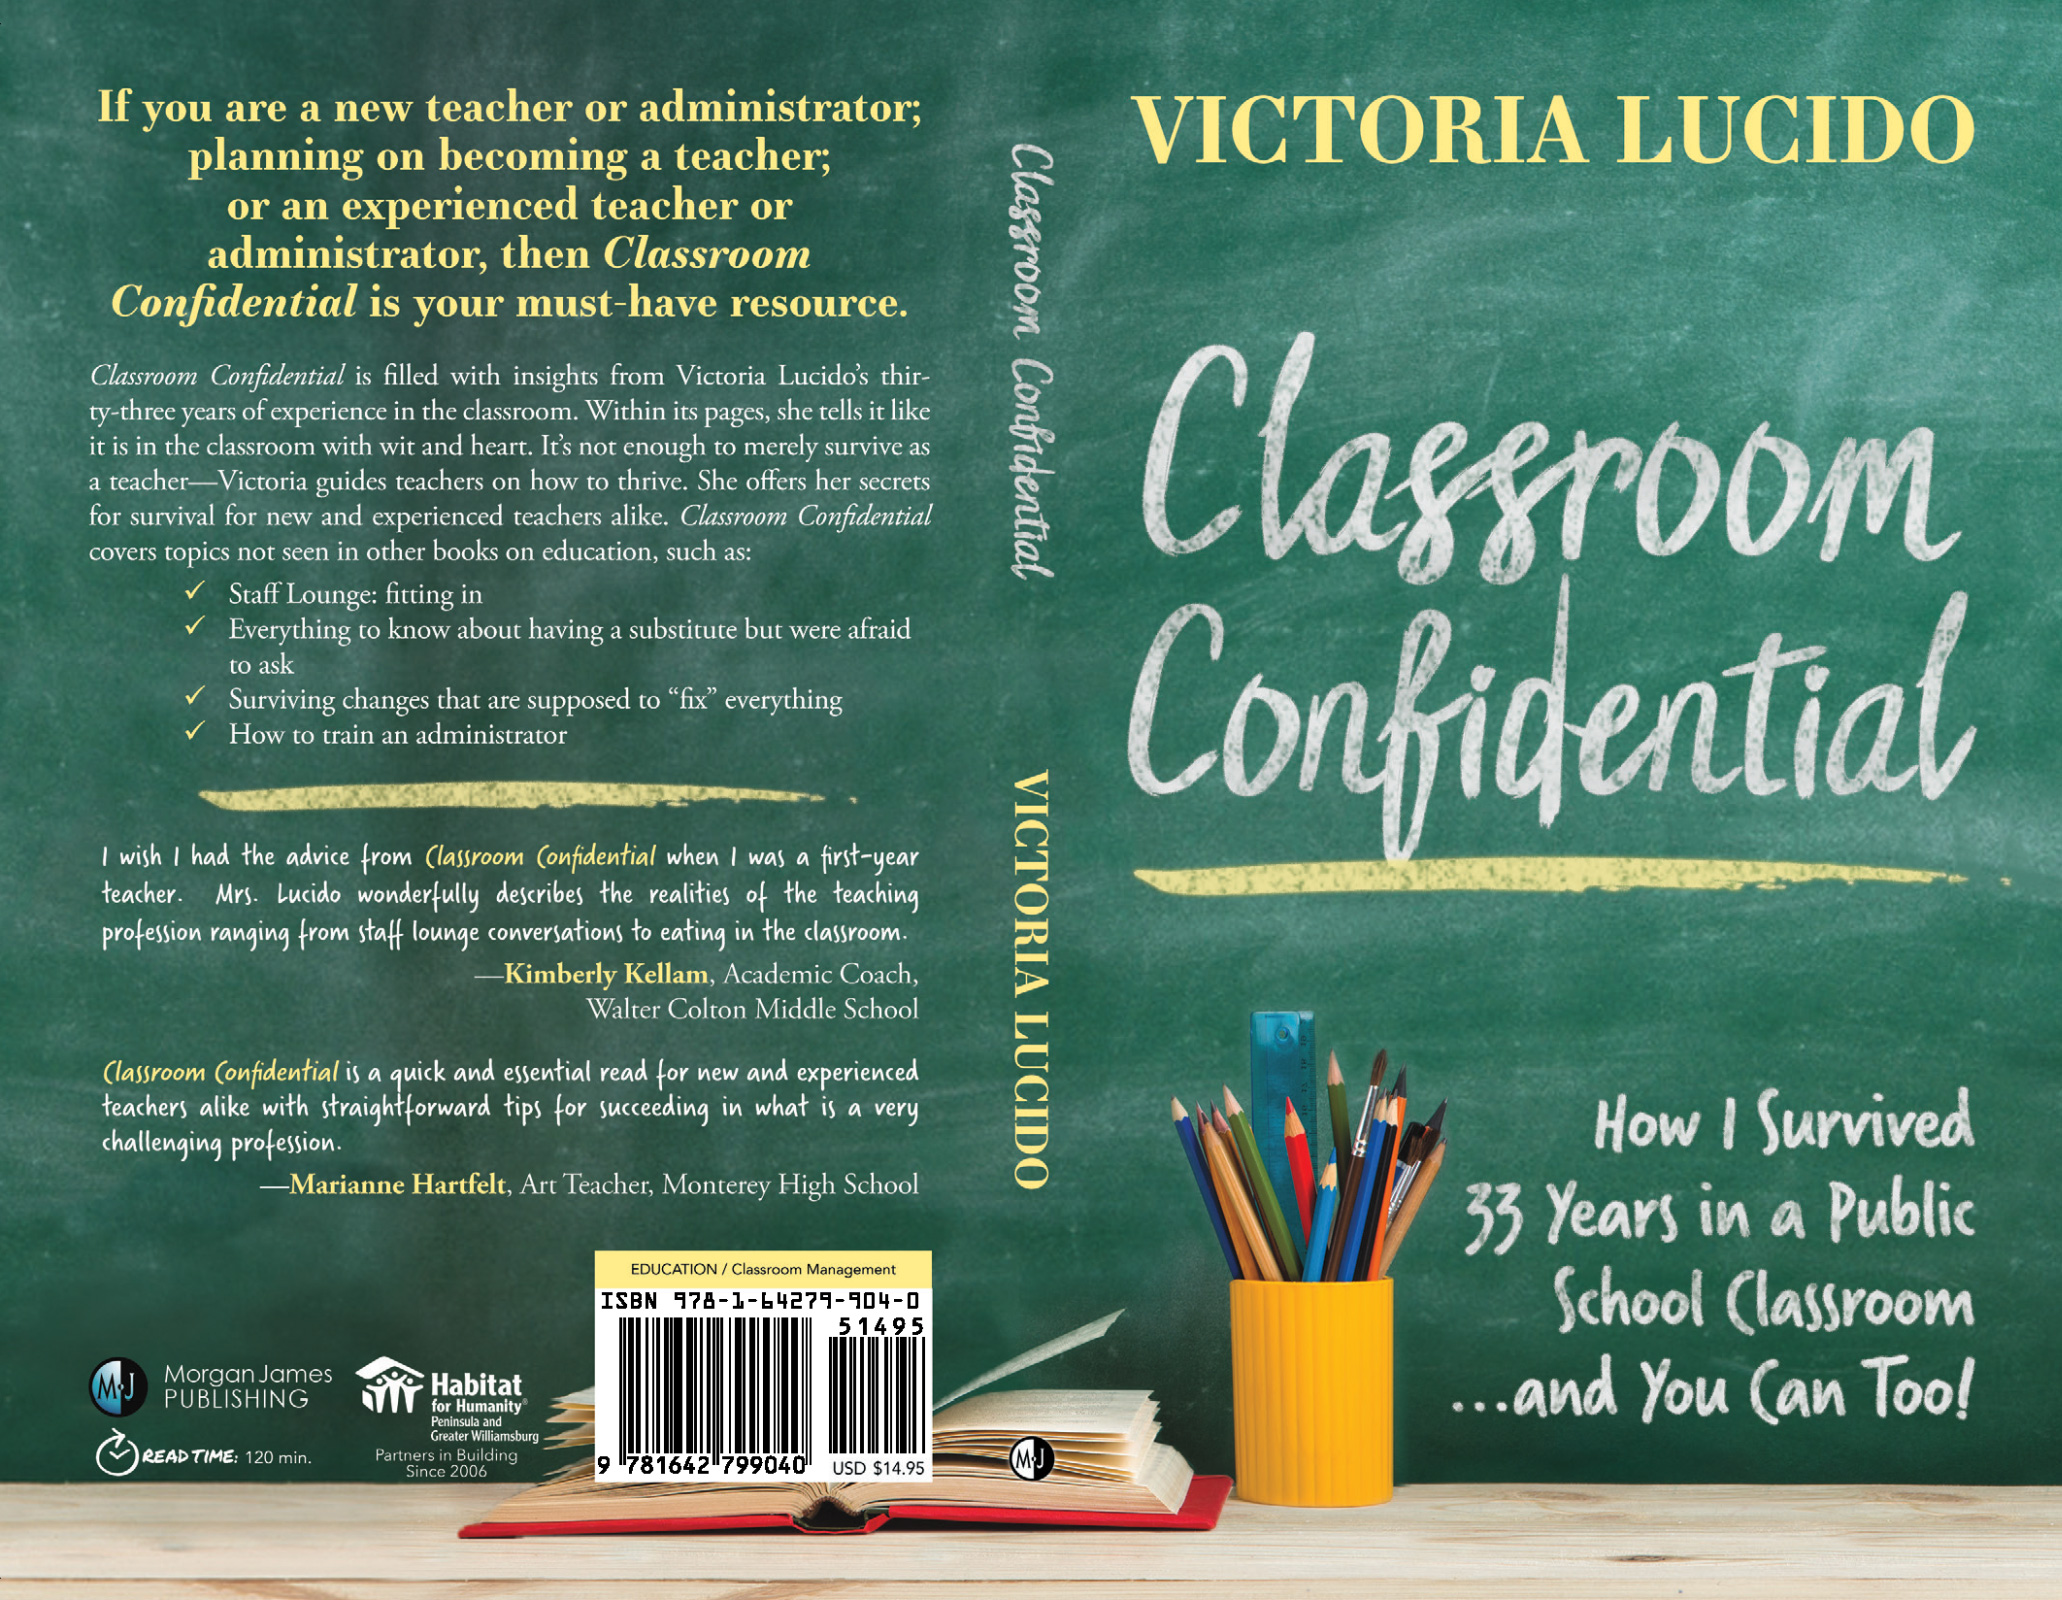 Classroom Confidential by Victoria Lucido